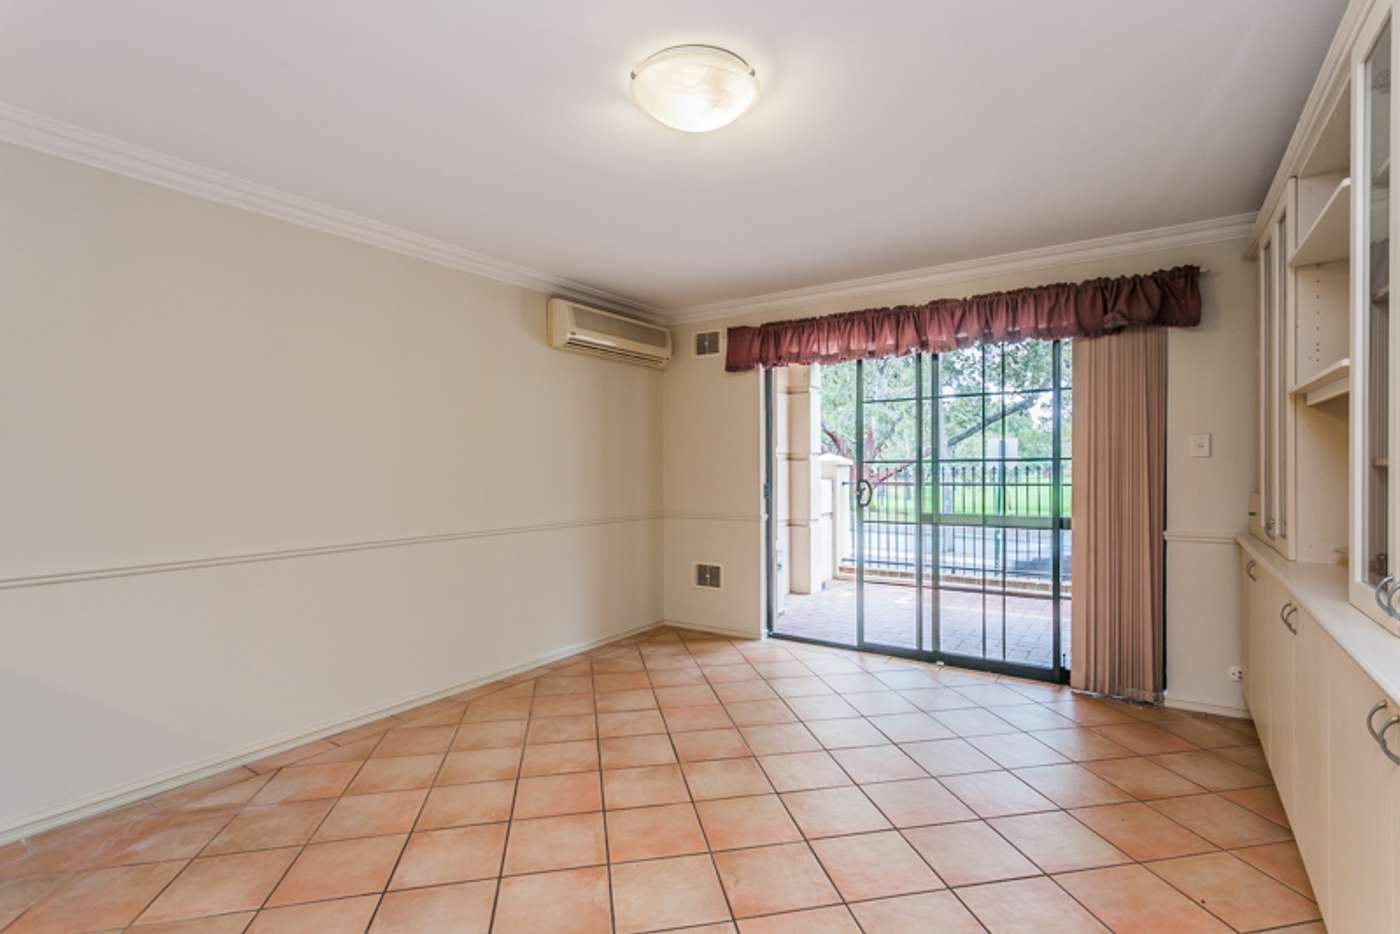 Seventh view of Homely apartment listing, 2/125 Wellington St, East Perth WA 6004